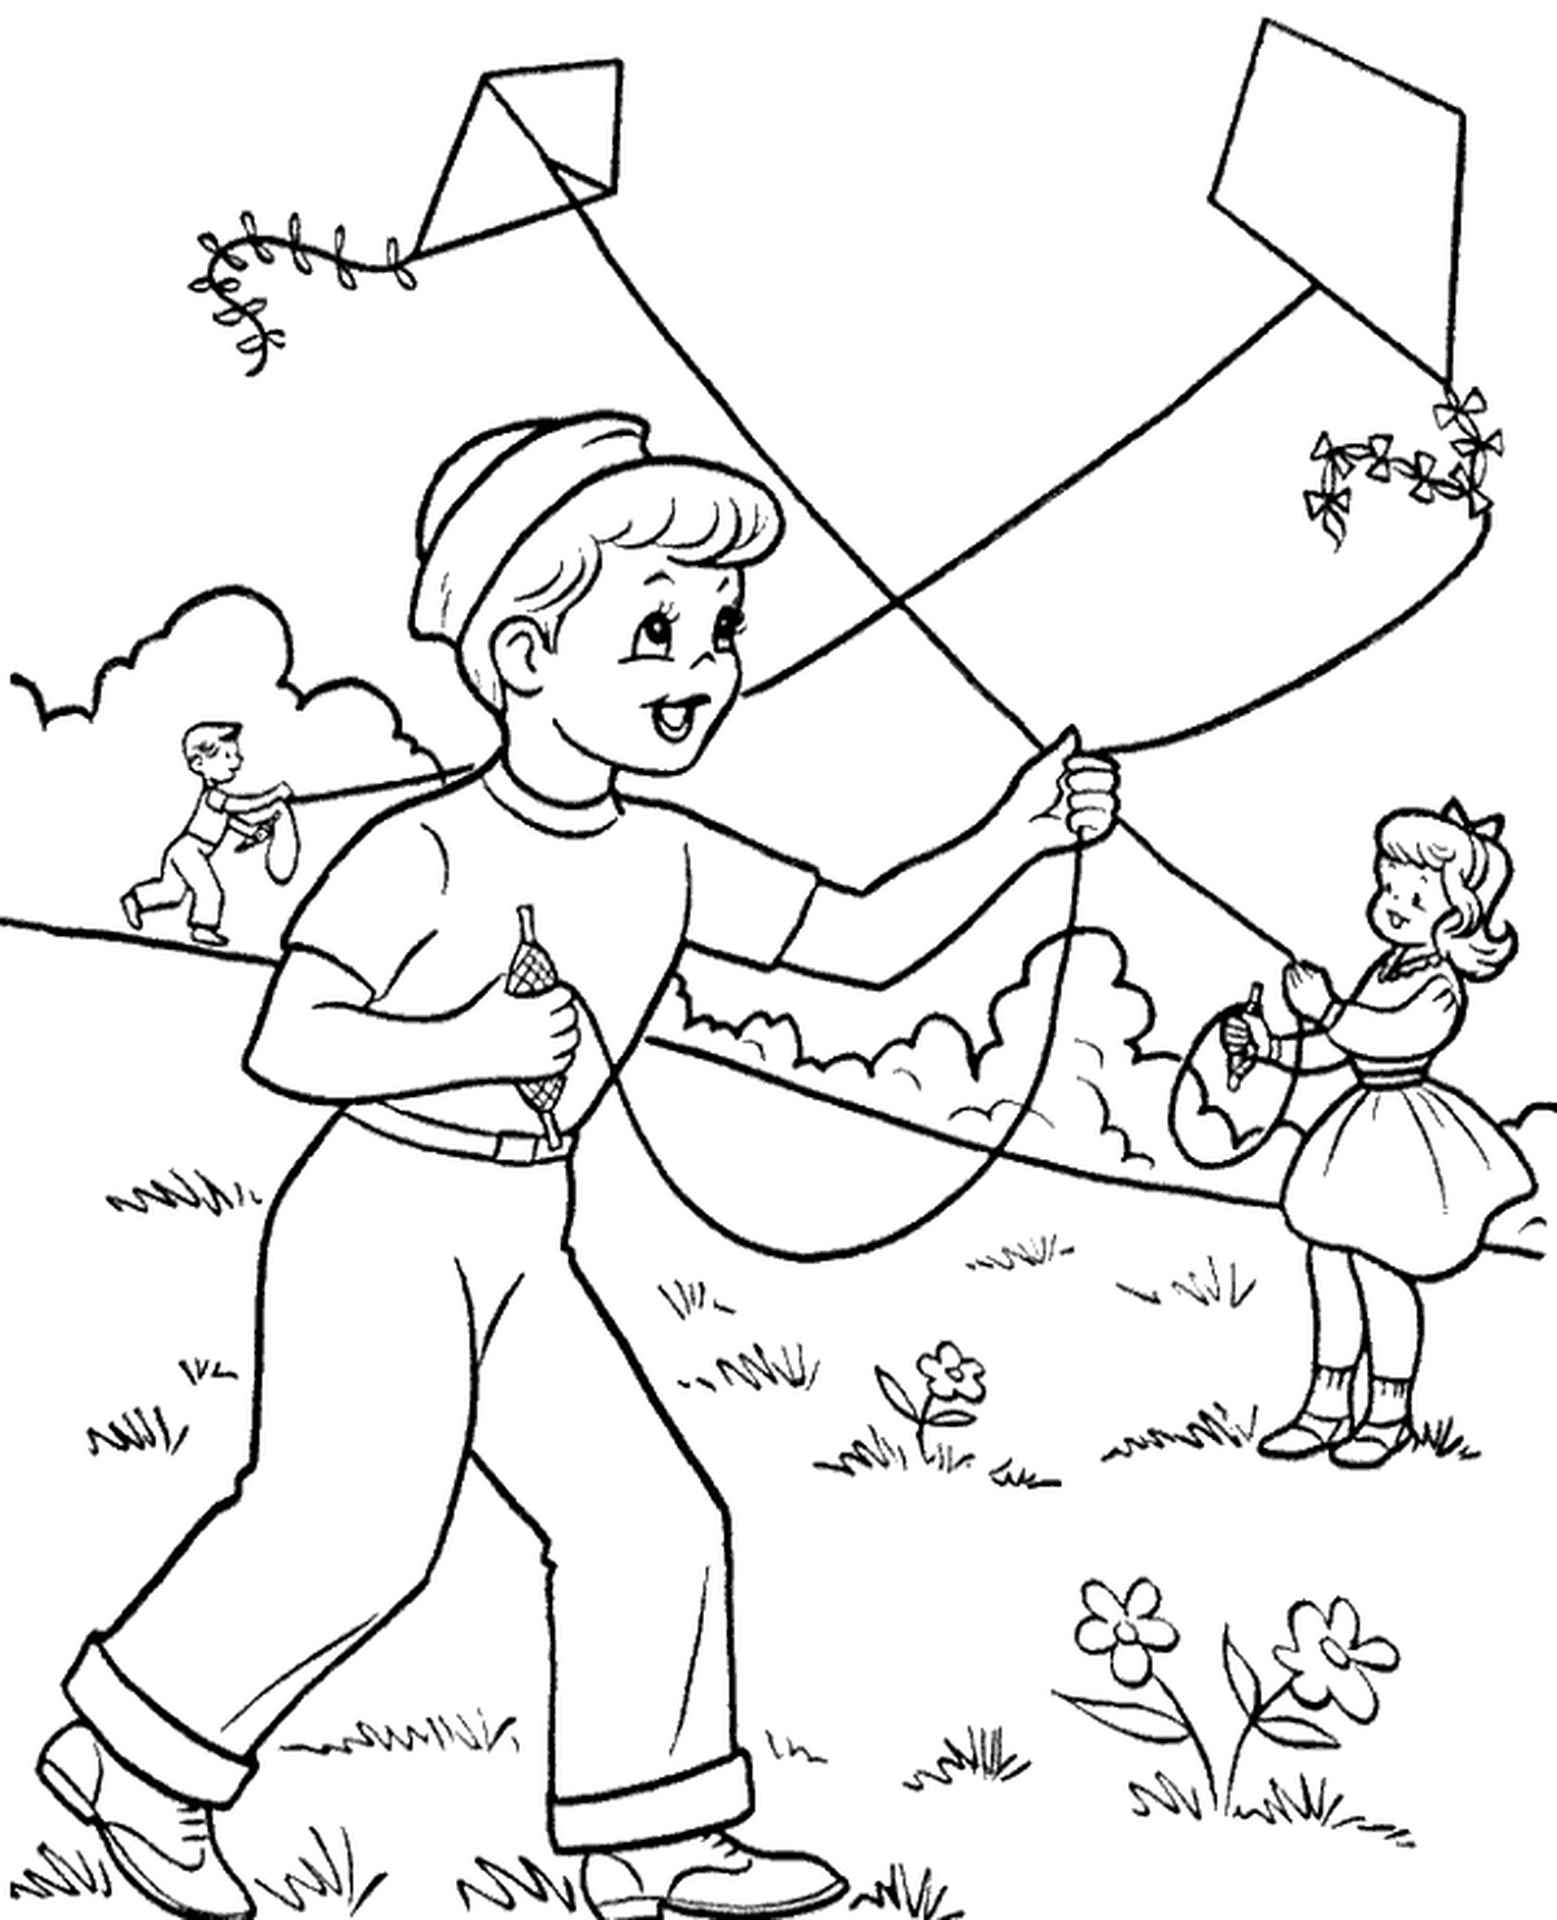 Childre Flying Kites Coloring Page